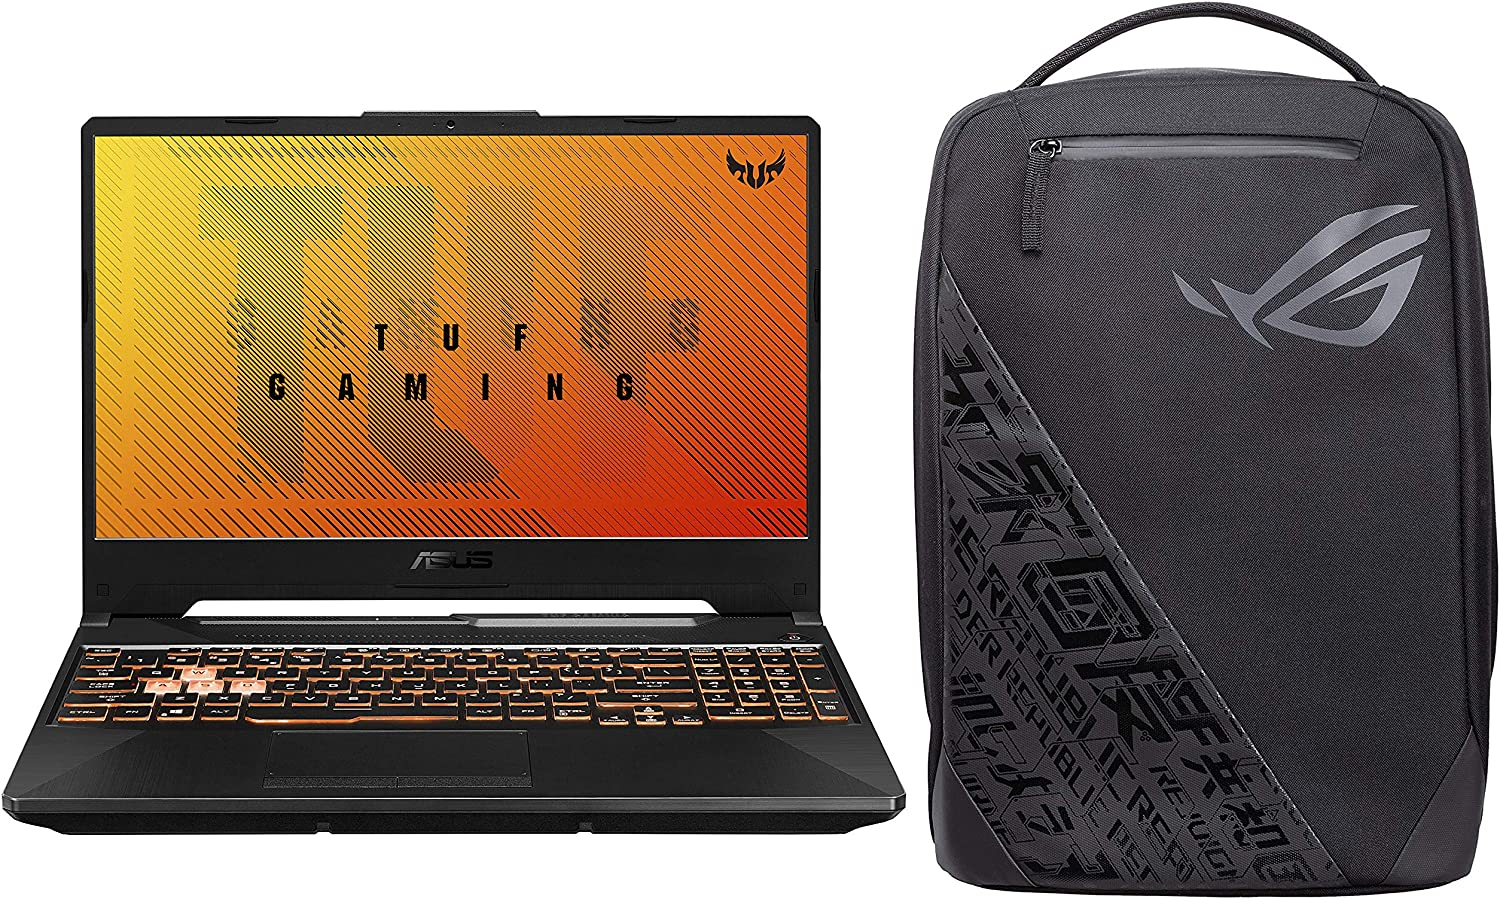 "ASUS TUF Gaming A15 Laptop 15.6"" FHD AMD Ryzen 7 4800H, GTX 1650 4GB GDDR6 Graphics (16GB RAM/1TB HDD + 256GB NVMe SSD/Windows 10/Bonfire Black/2.30 Kg), FA506IH-BQ182T"